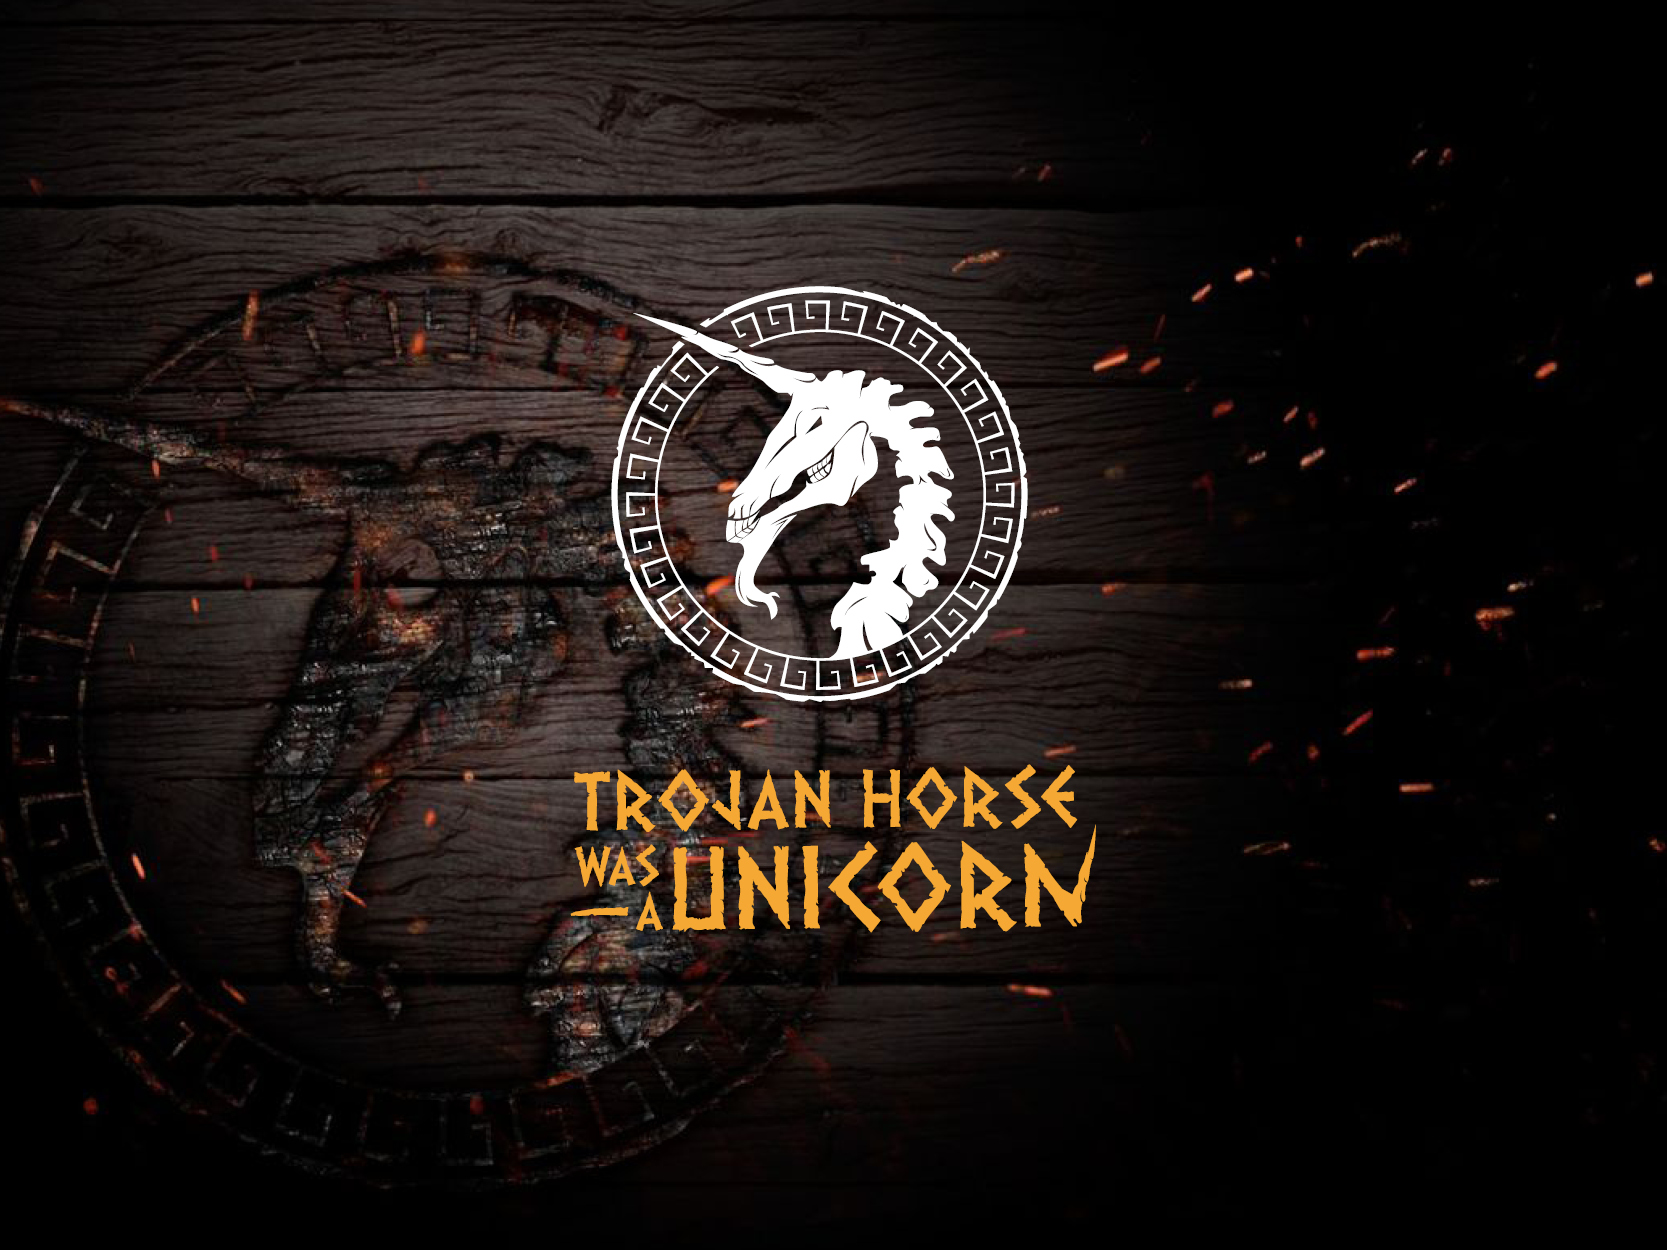 Trojan Horse was a Unicorn